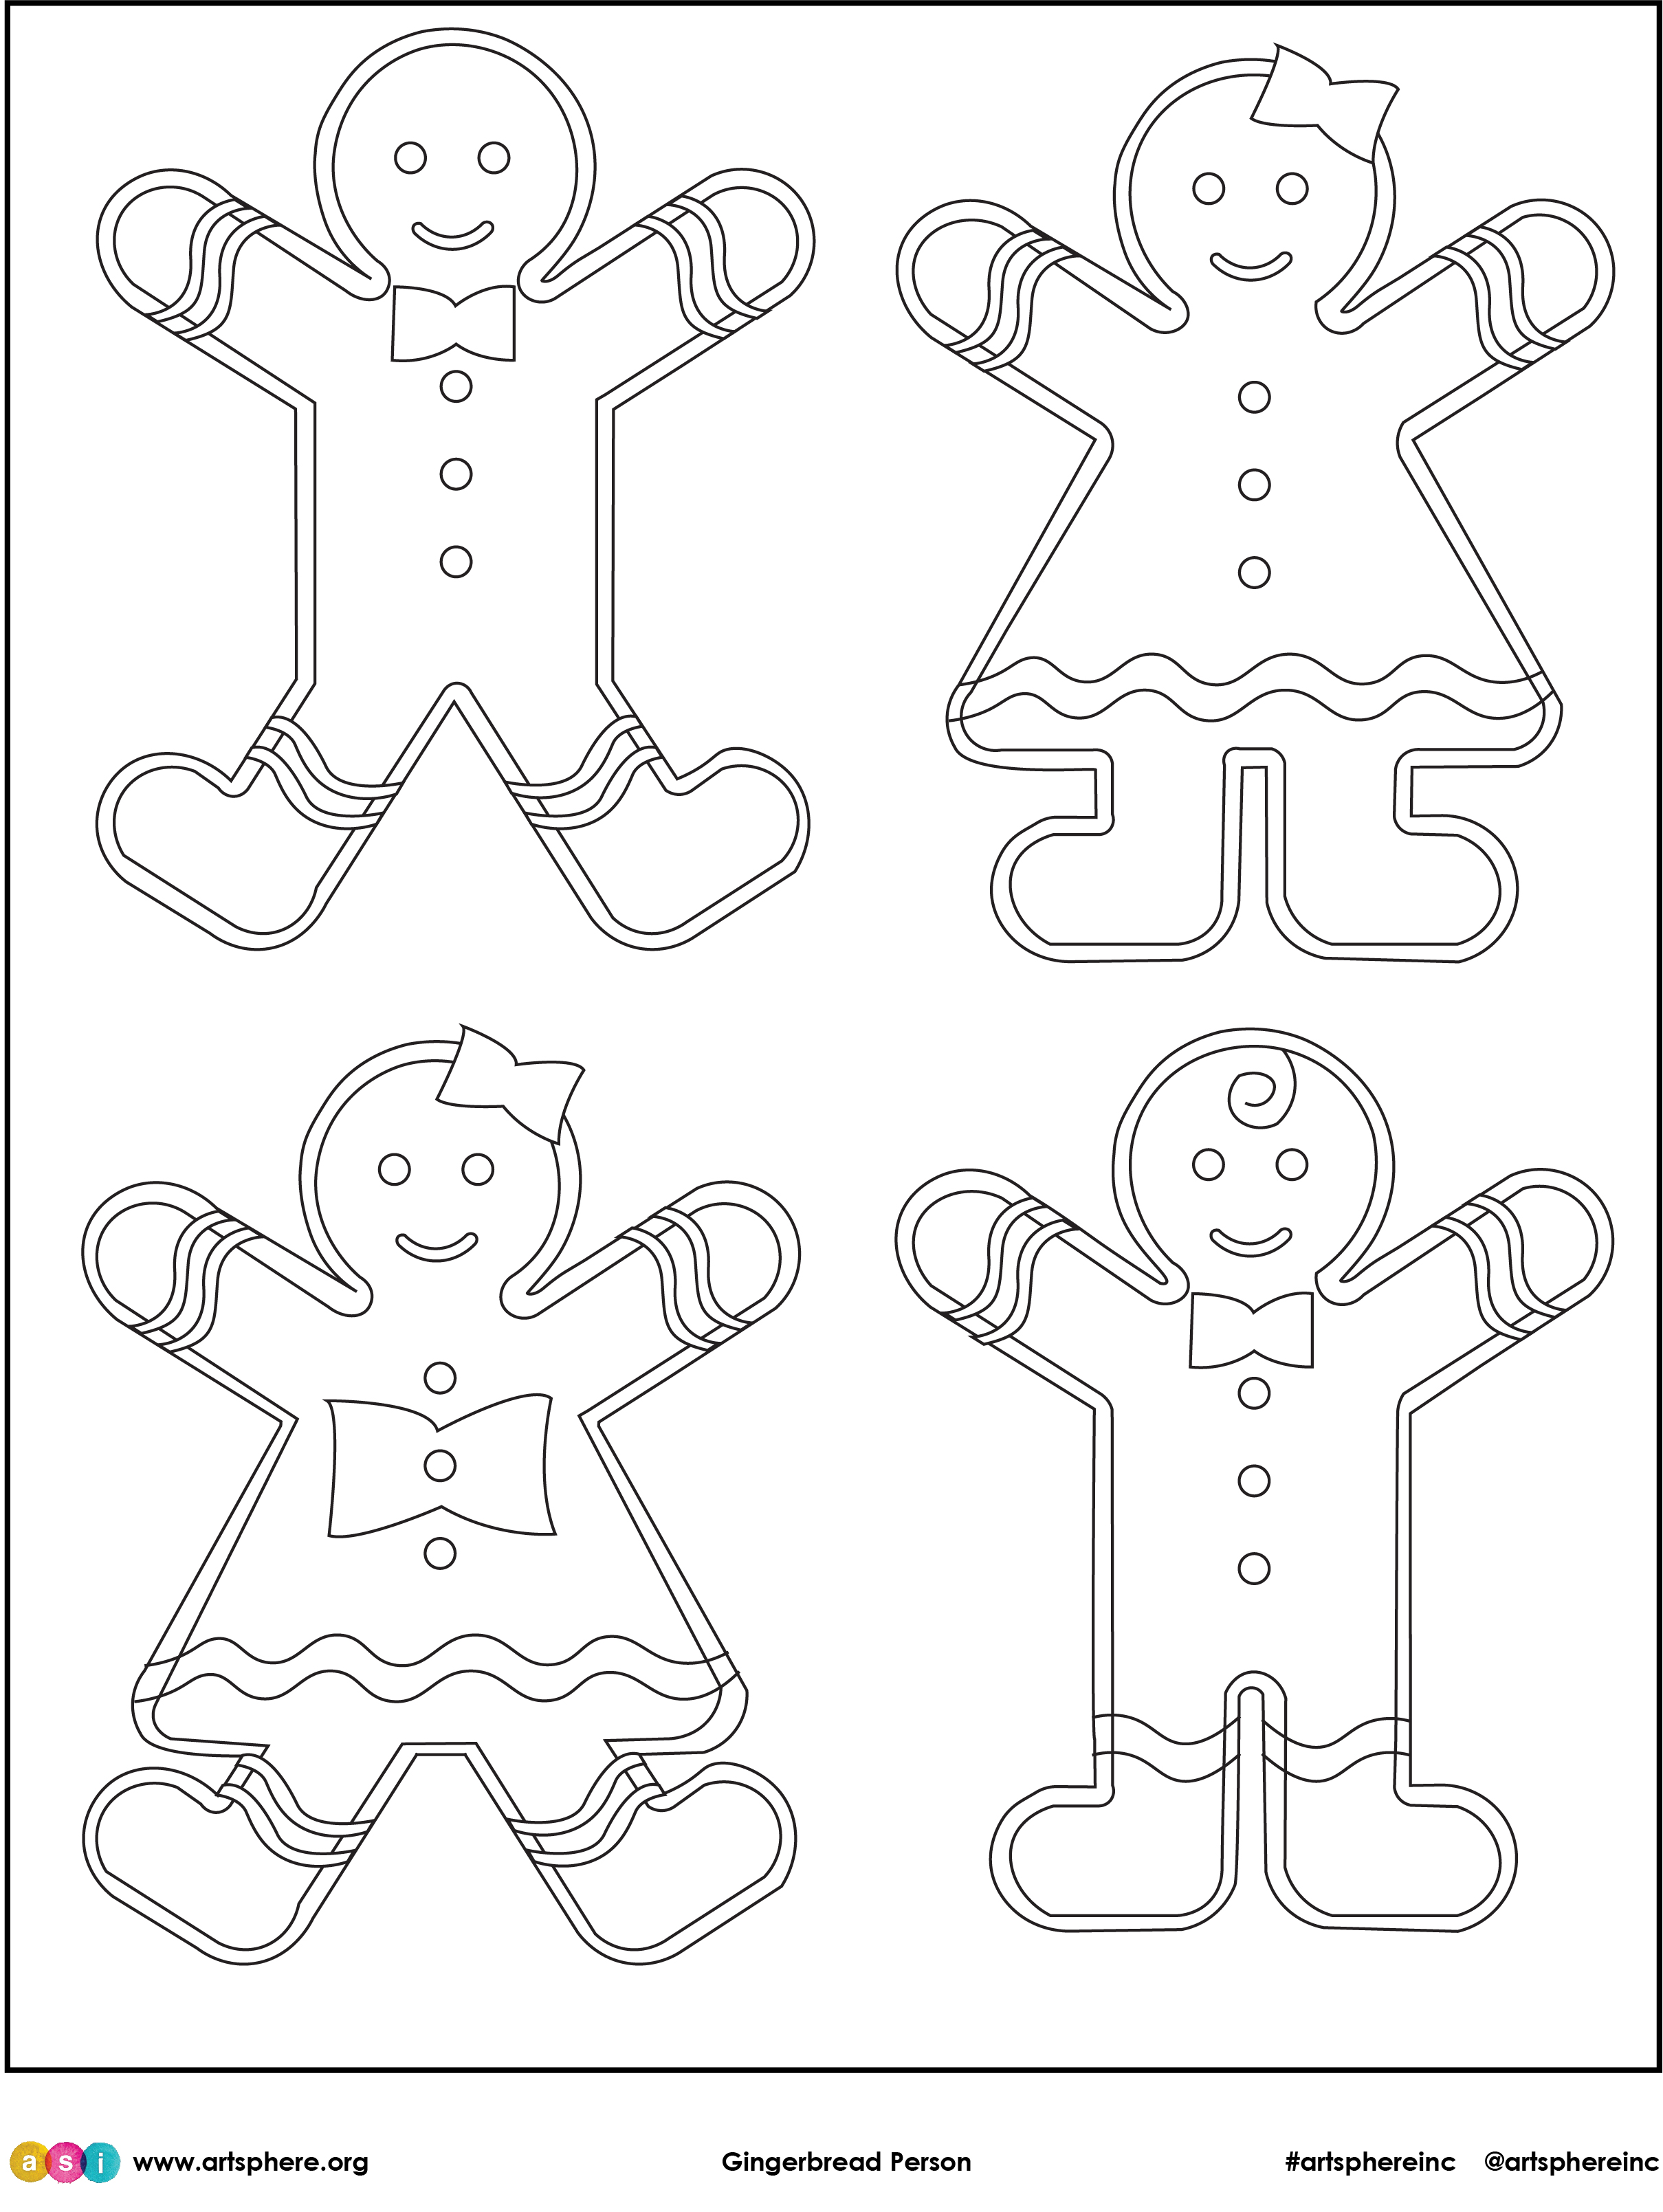 Gingerbread Person Handout